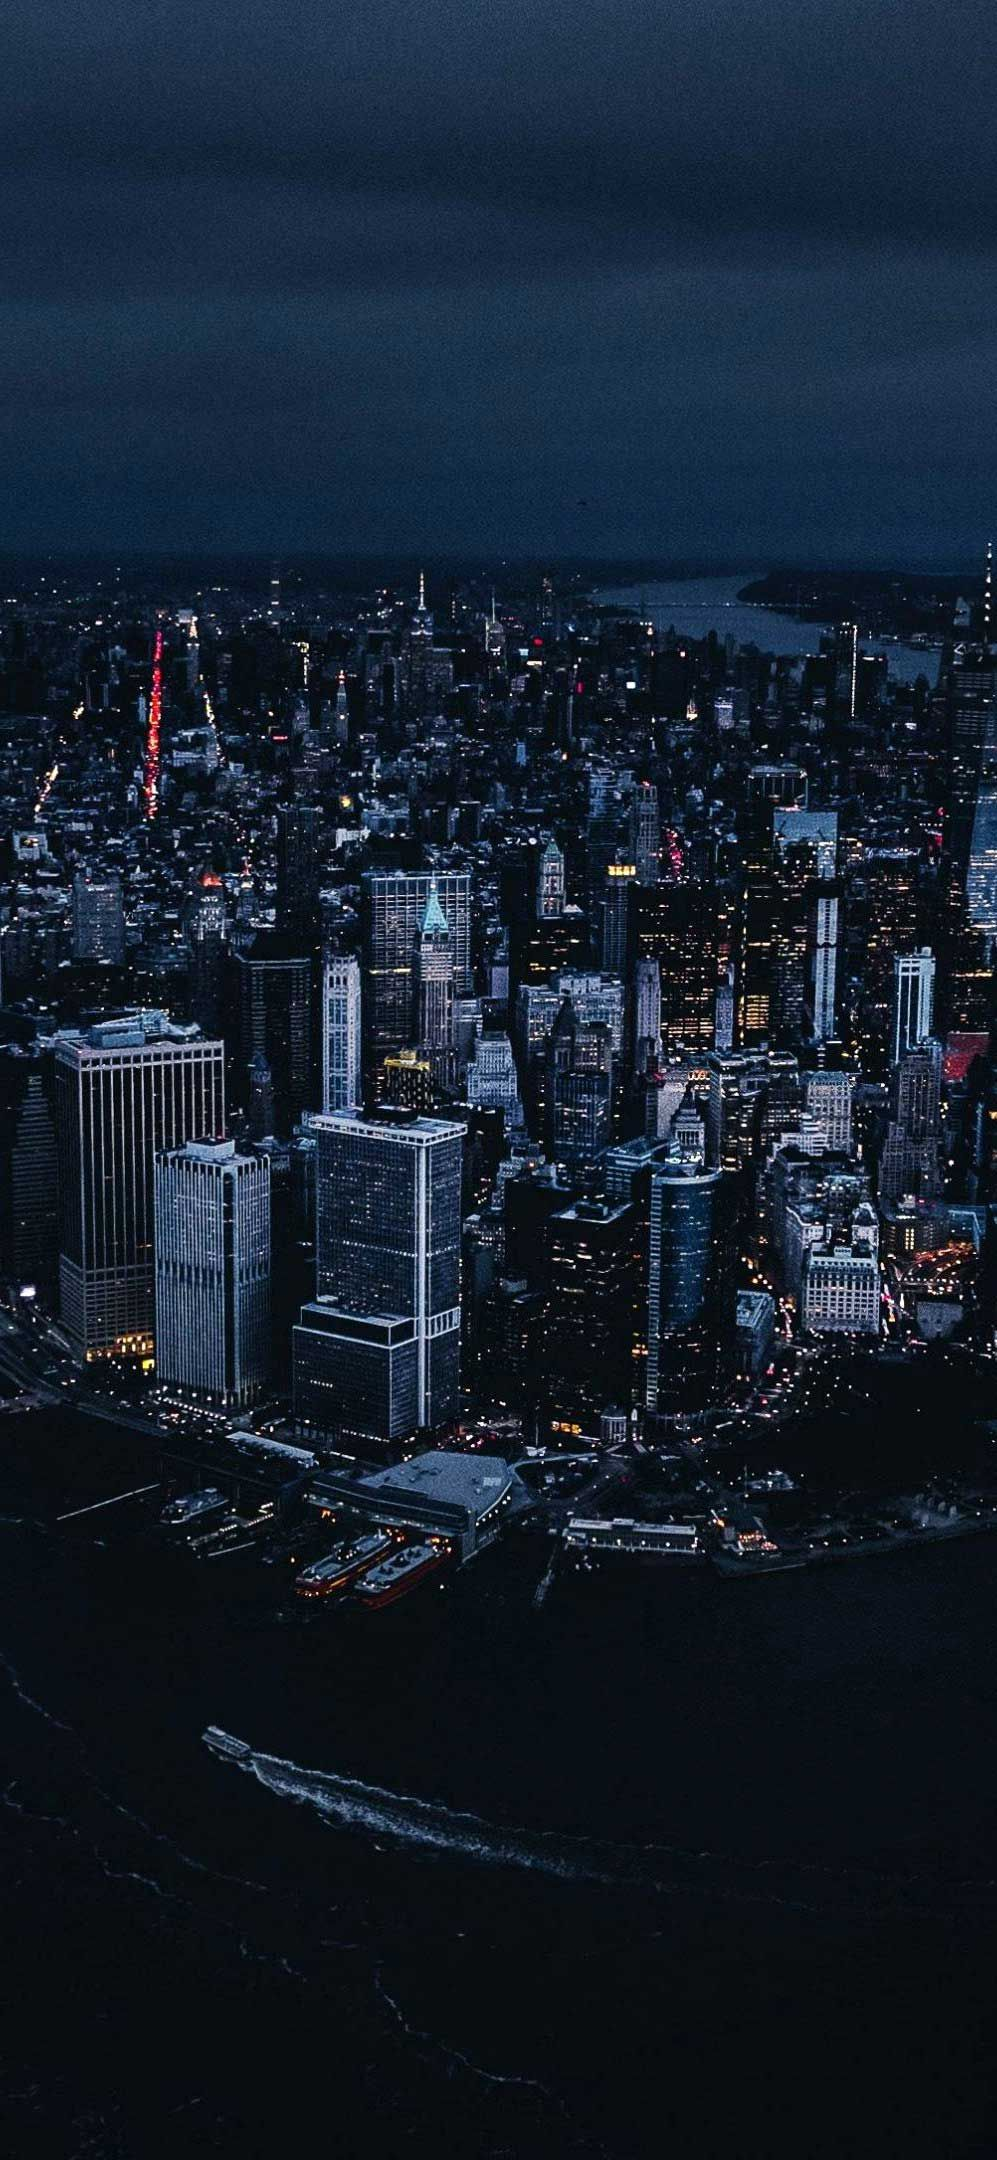 Iphone Wallpaper New York City Aerial View Night Buildings Hd New York Wallpaper New York City Aesthetic Night City Wallpaper Best of new york night wallpaper for